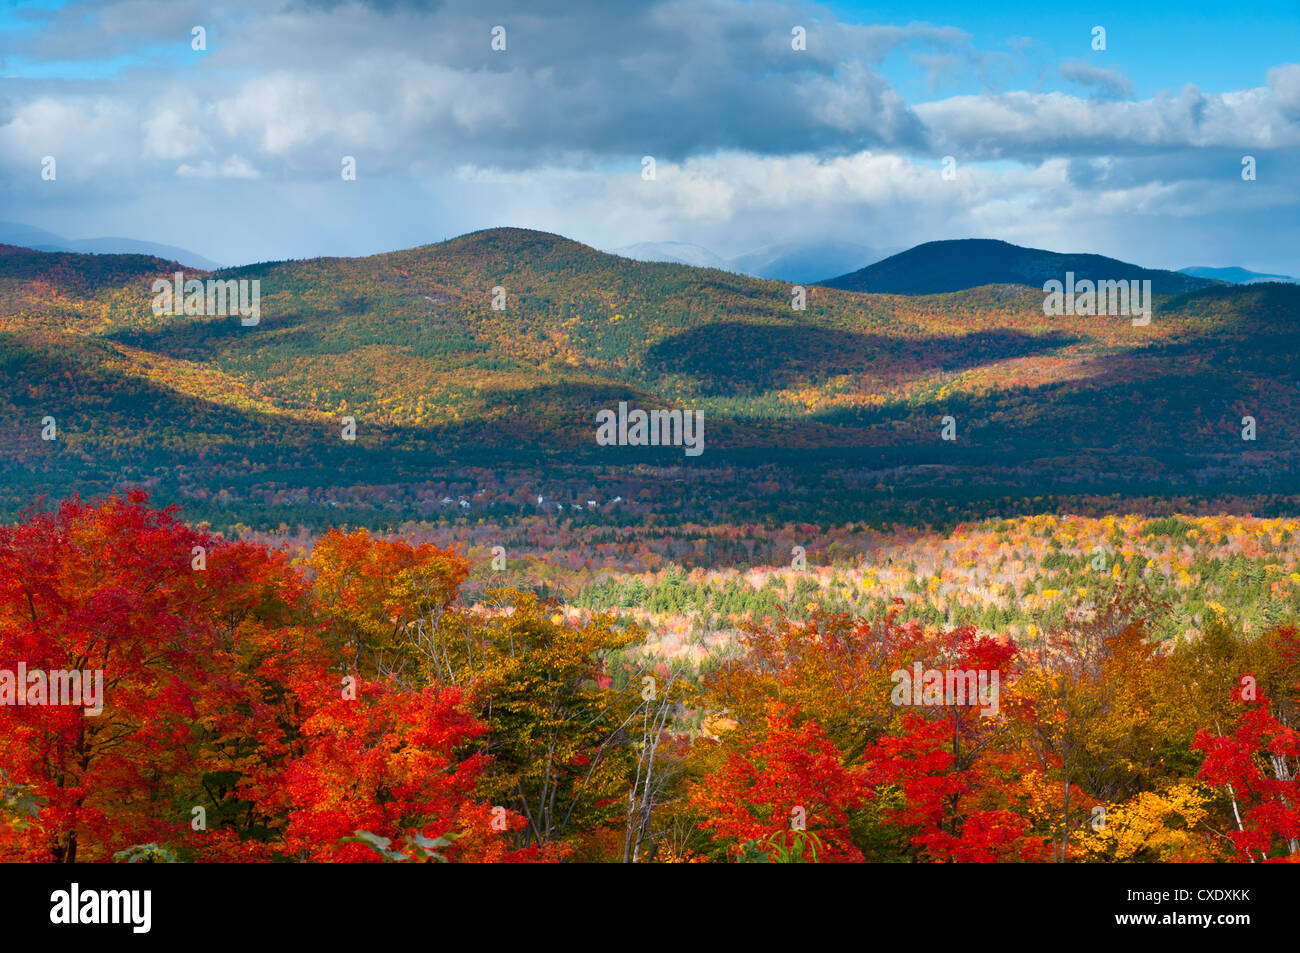 White Mountains National Forest, New Hampshire, Nueva Inglaterra, los Estados Unidos de América, América Imagen De Stock